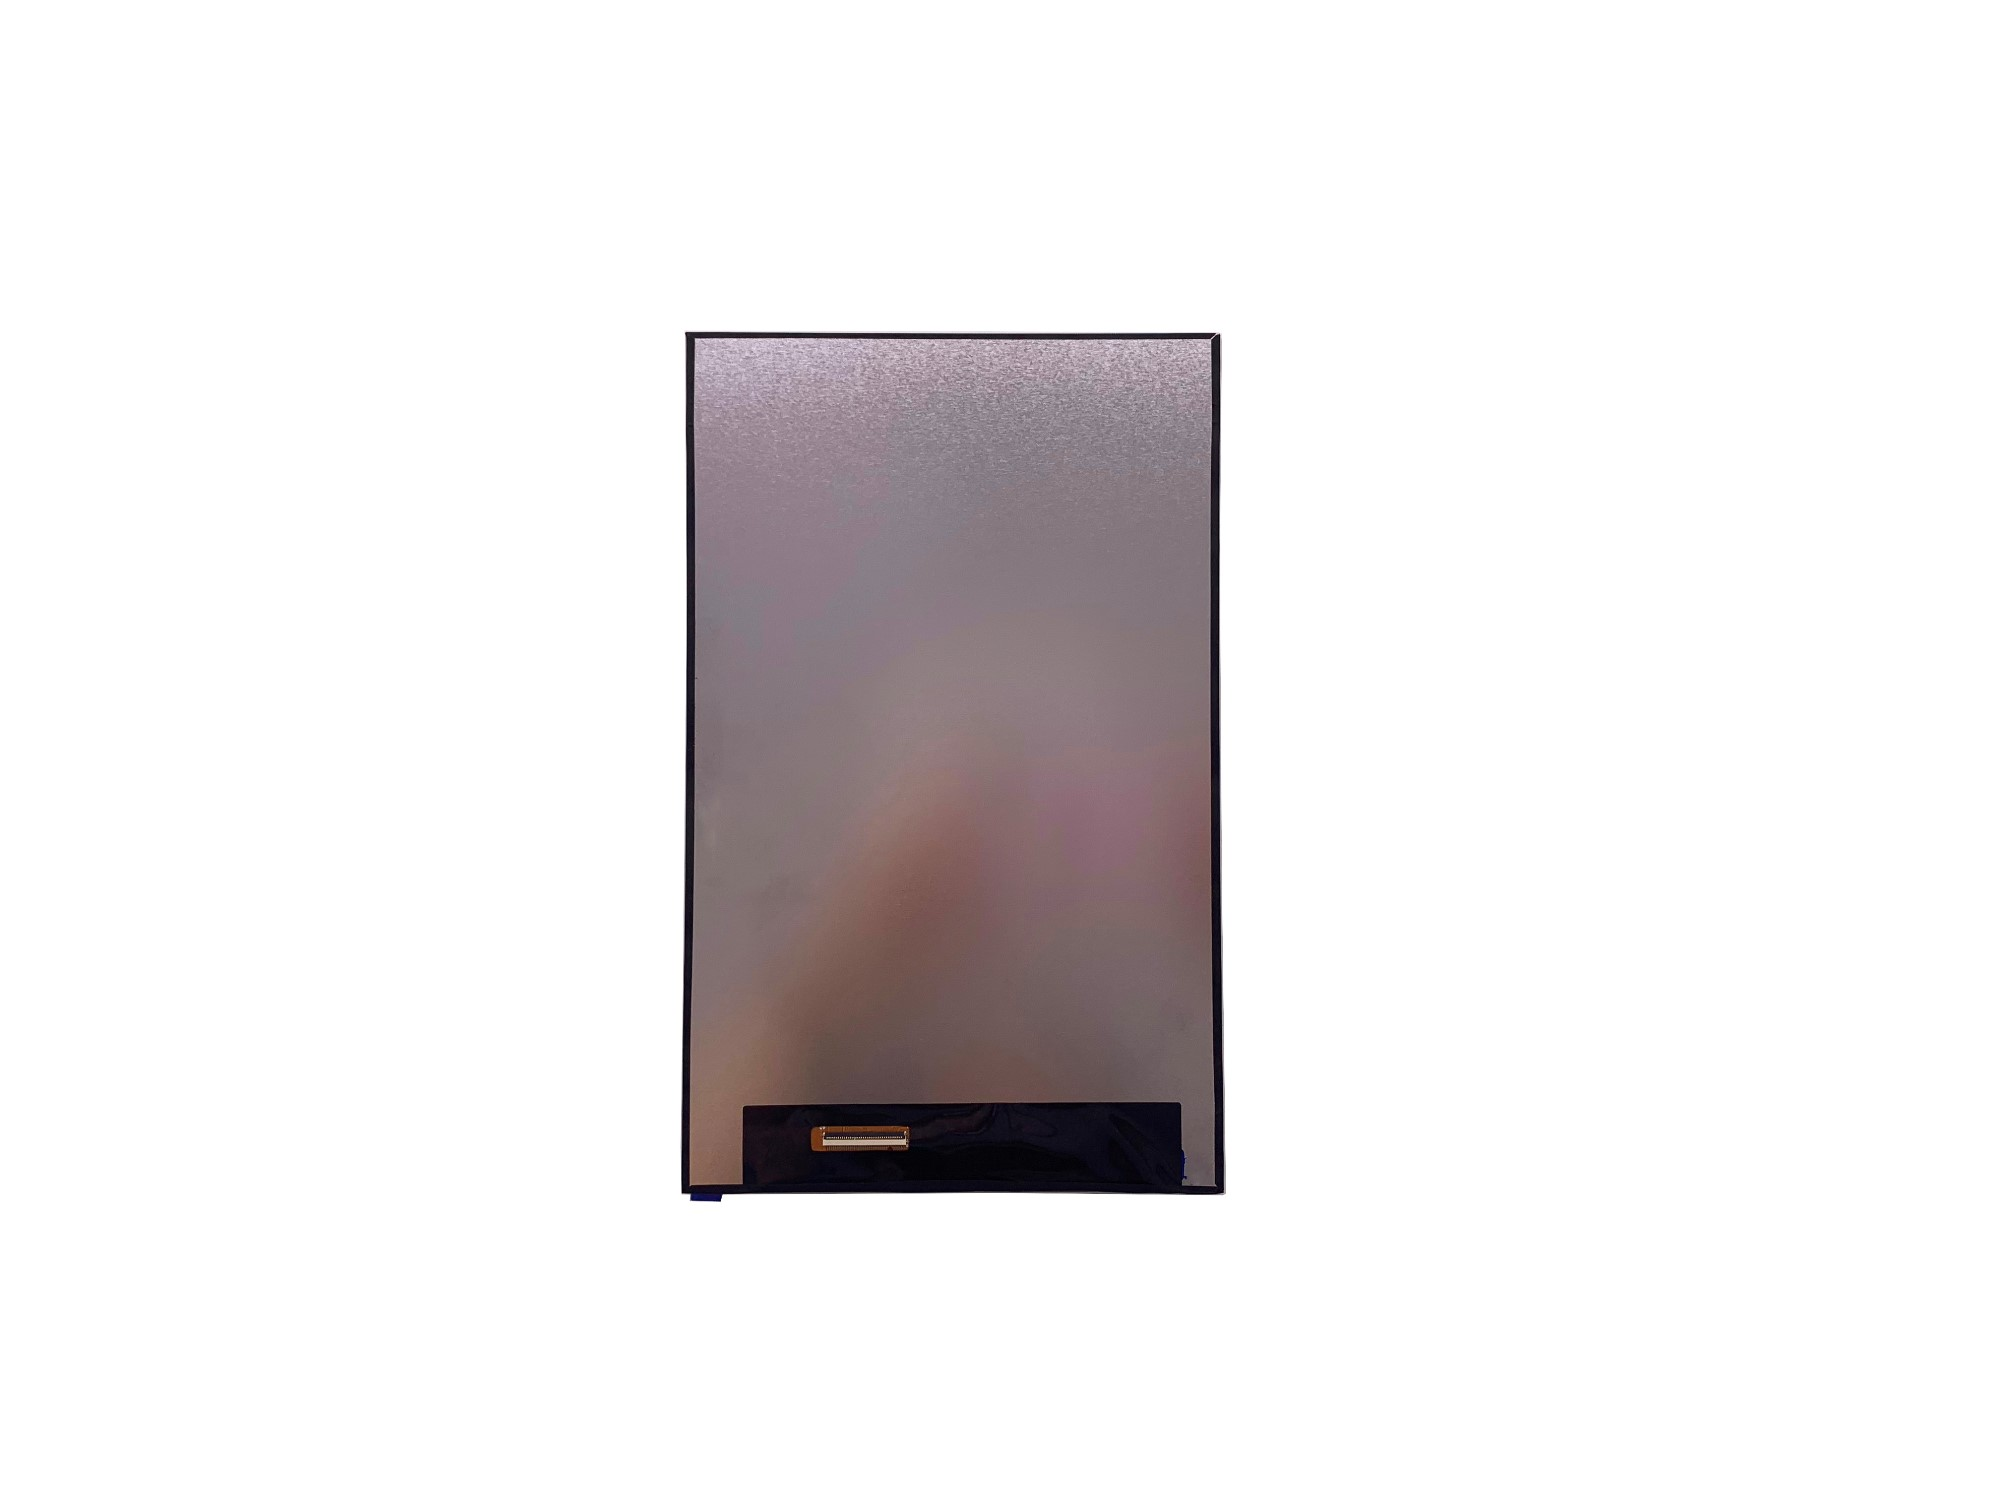 Custom China 1080x1920 10.1 Inch Ips Mipi Interface Lcd Display Module, 1080x1920 10.1 Inch Ips Mipi Interface Lcd Display Module Factory, 1080x1920 10.1 Inch Ips Mipi Interface Lcd Display Module OEM